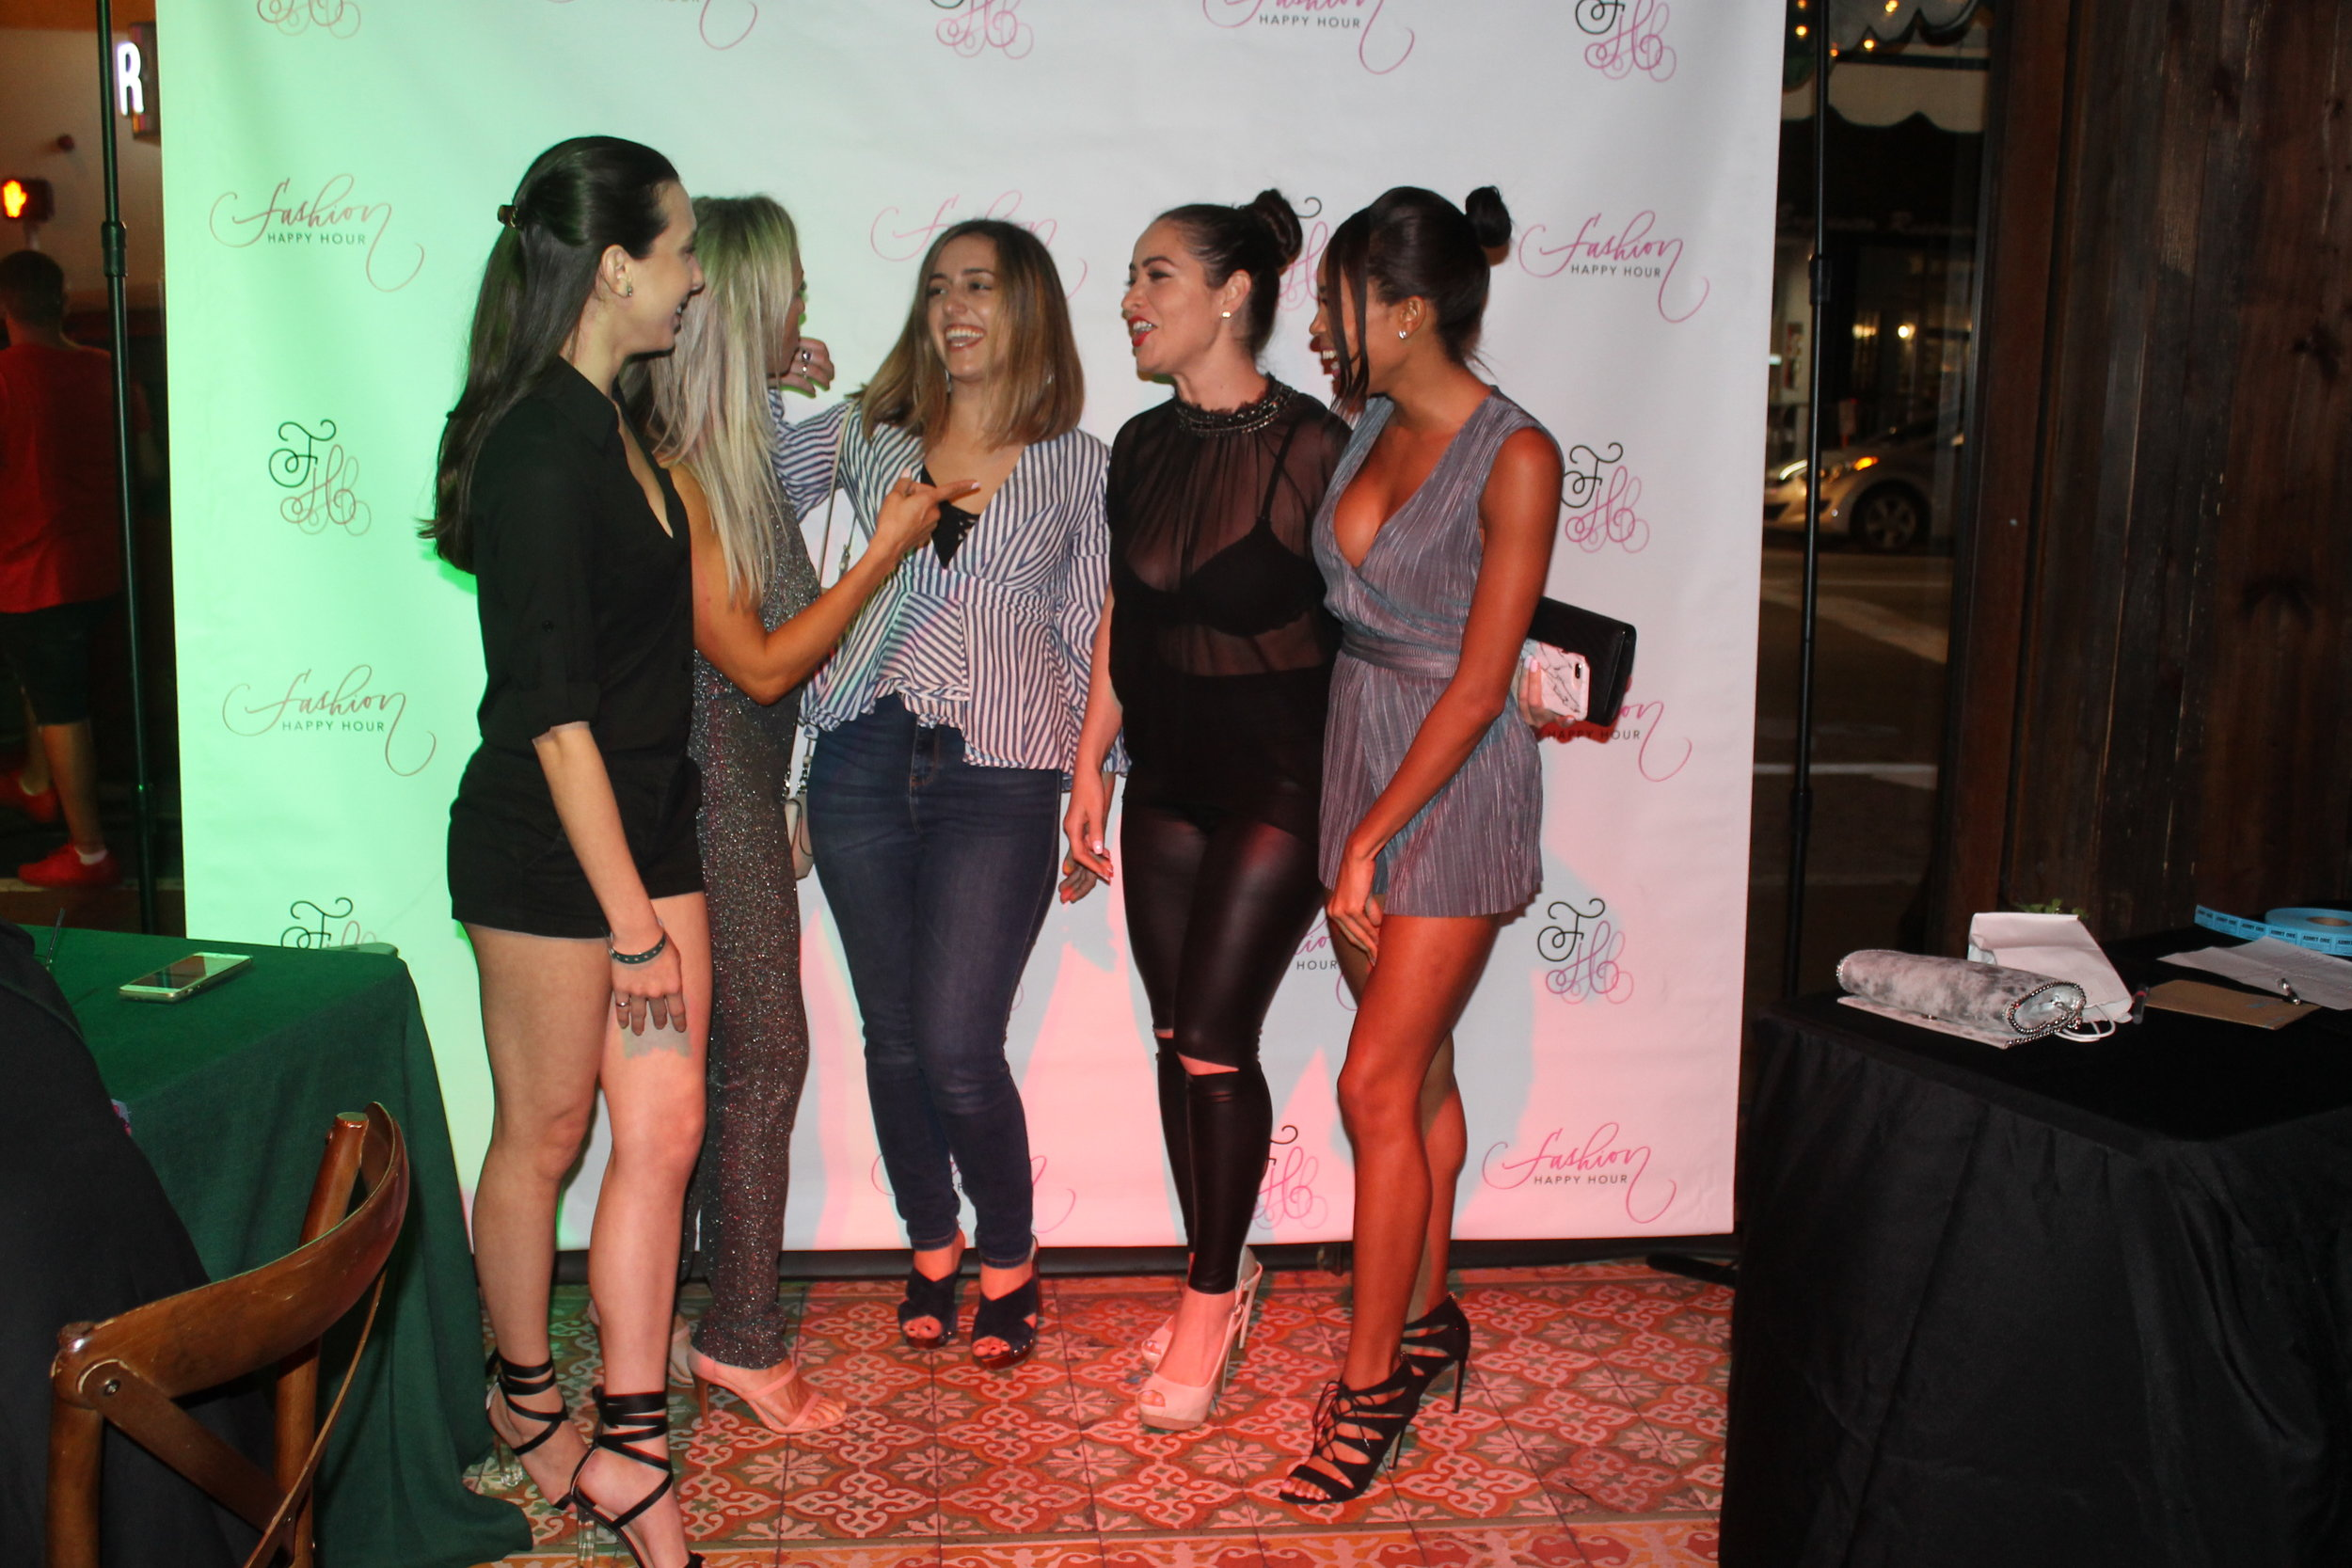 FASHION HAPPY HOUR STRIVES TO CREATE A ONE-OF-A KIND AND VERY CHIC community FOR YOUNG ENTREPRENEURS AND FASHION ENTHUSIASTS IN THE FASHION AND ARTS INDUSTRY TO NETWORK AND HAVE FUN AT THE SAME TIME. -